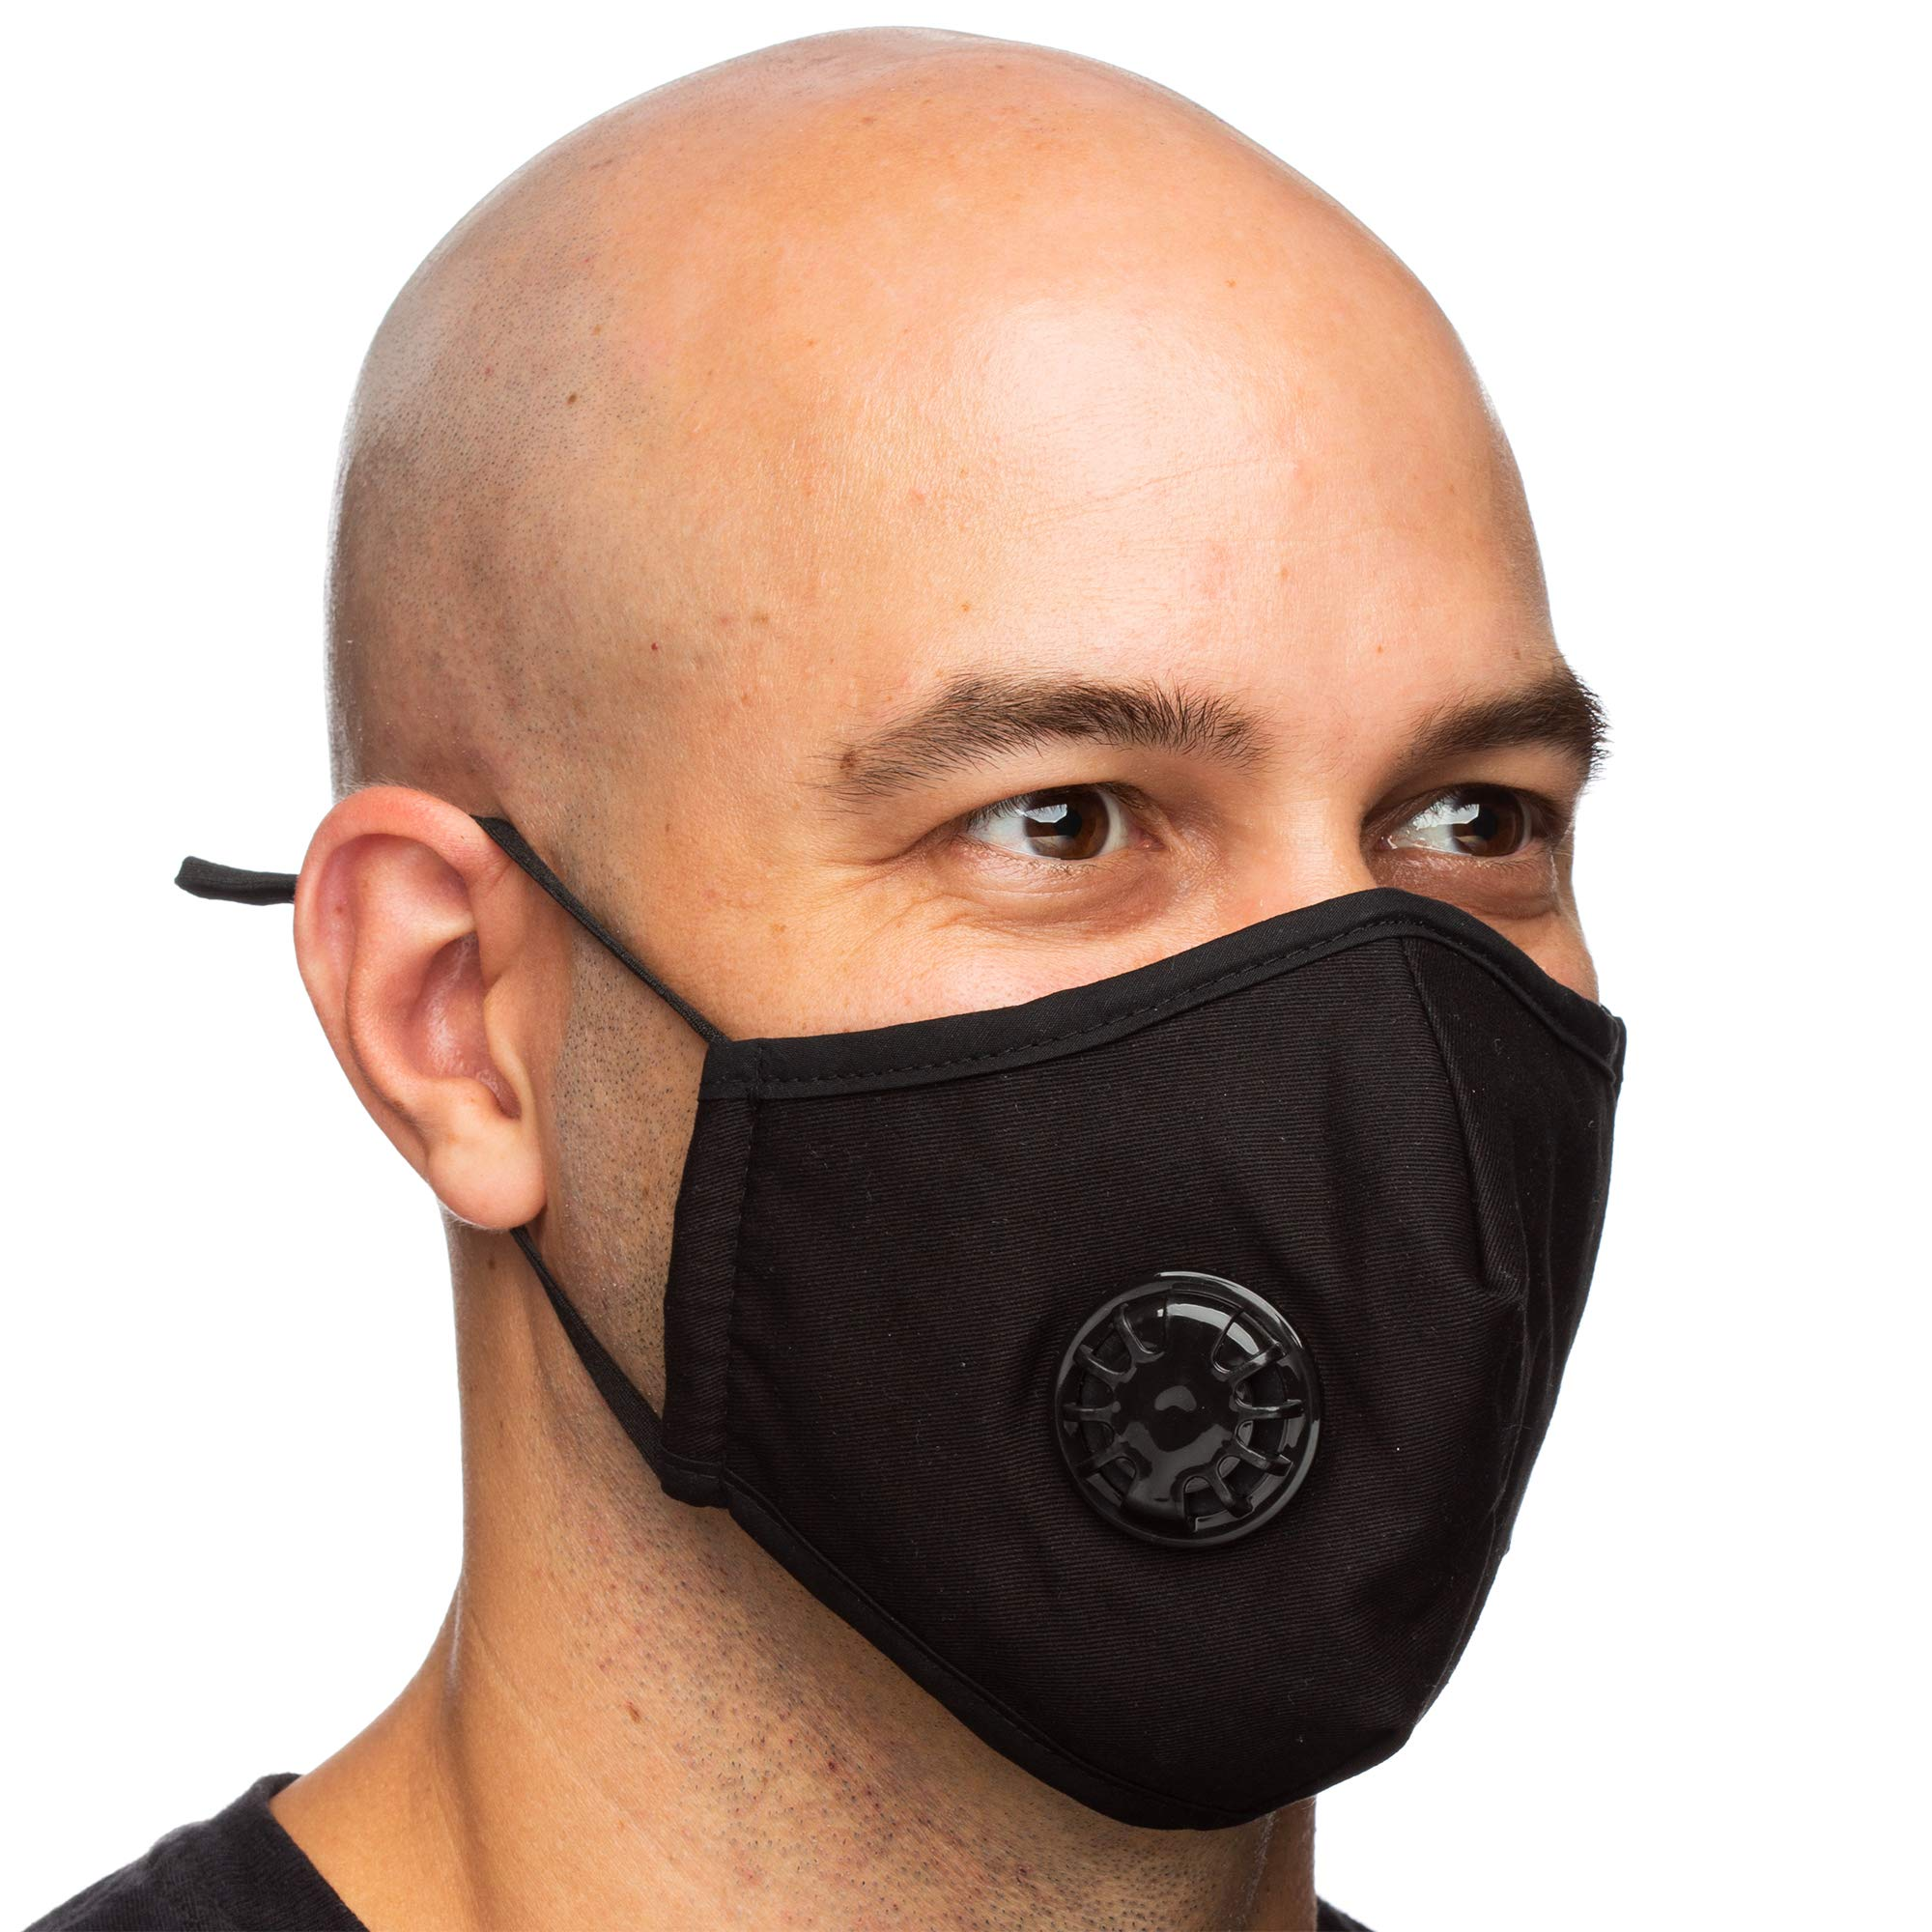 Debrief Me Military Grade N99 (4 Masks) Carbon Activated Anti Dust Face Mouth Cover Mask Respirator-Dustproof Anti-bacterial Washable -Reusable Respirator Comfy-Cotton(N99-4Color) by Debrief Me (Image #3)